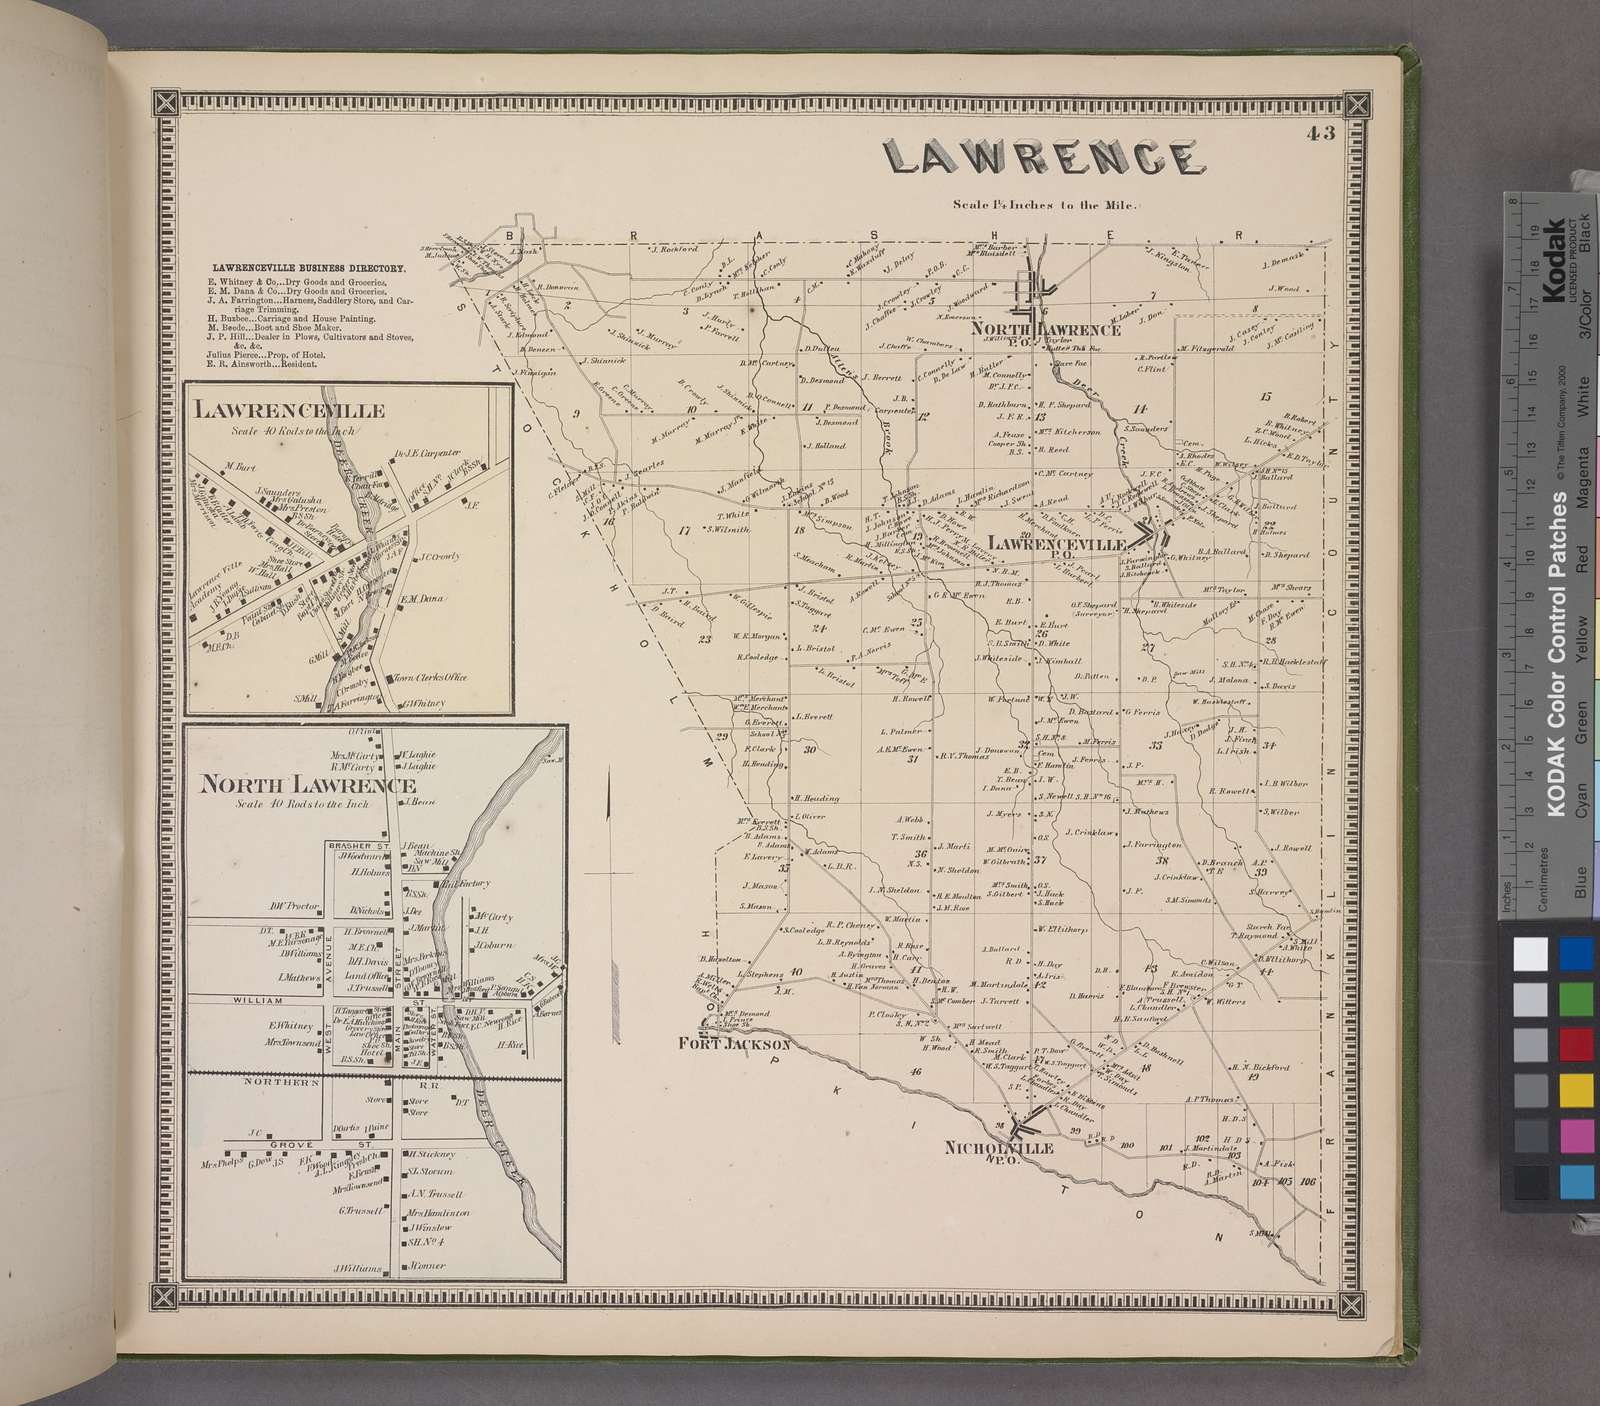 Lawrenceville Business Directory. ; Lawrenceville [Village]; North Lawrence [Village]; Lawrence [Township]